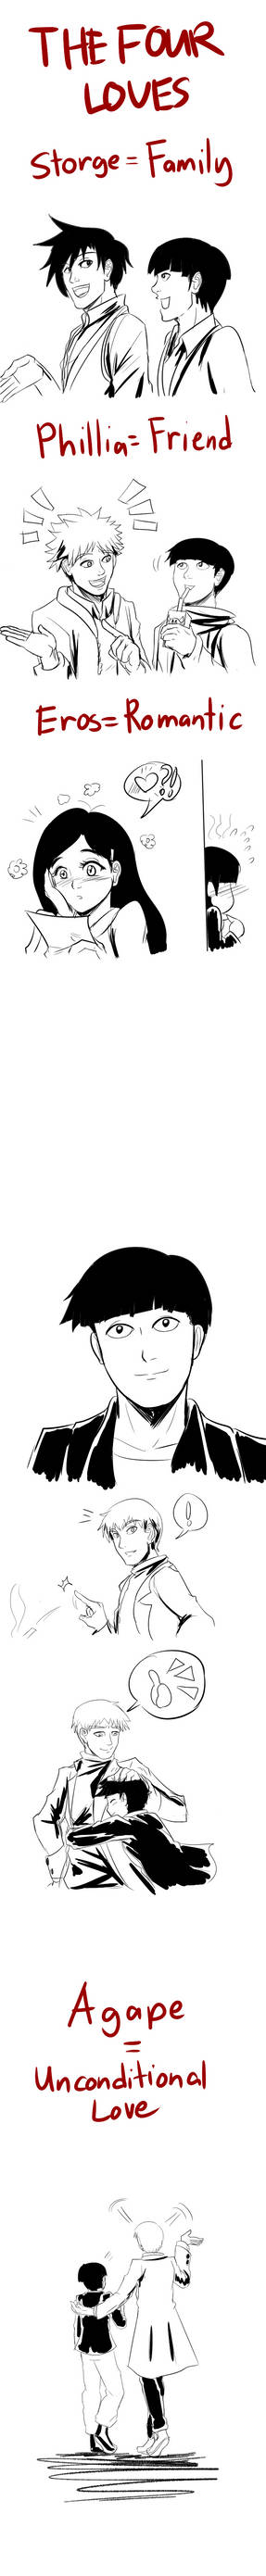 MP100: The Four Loves